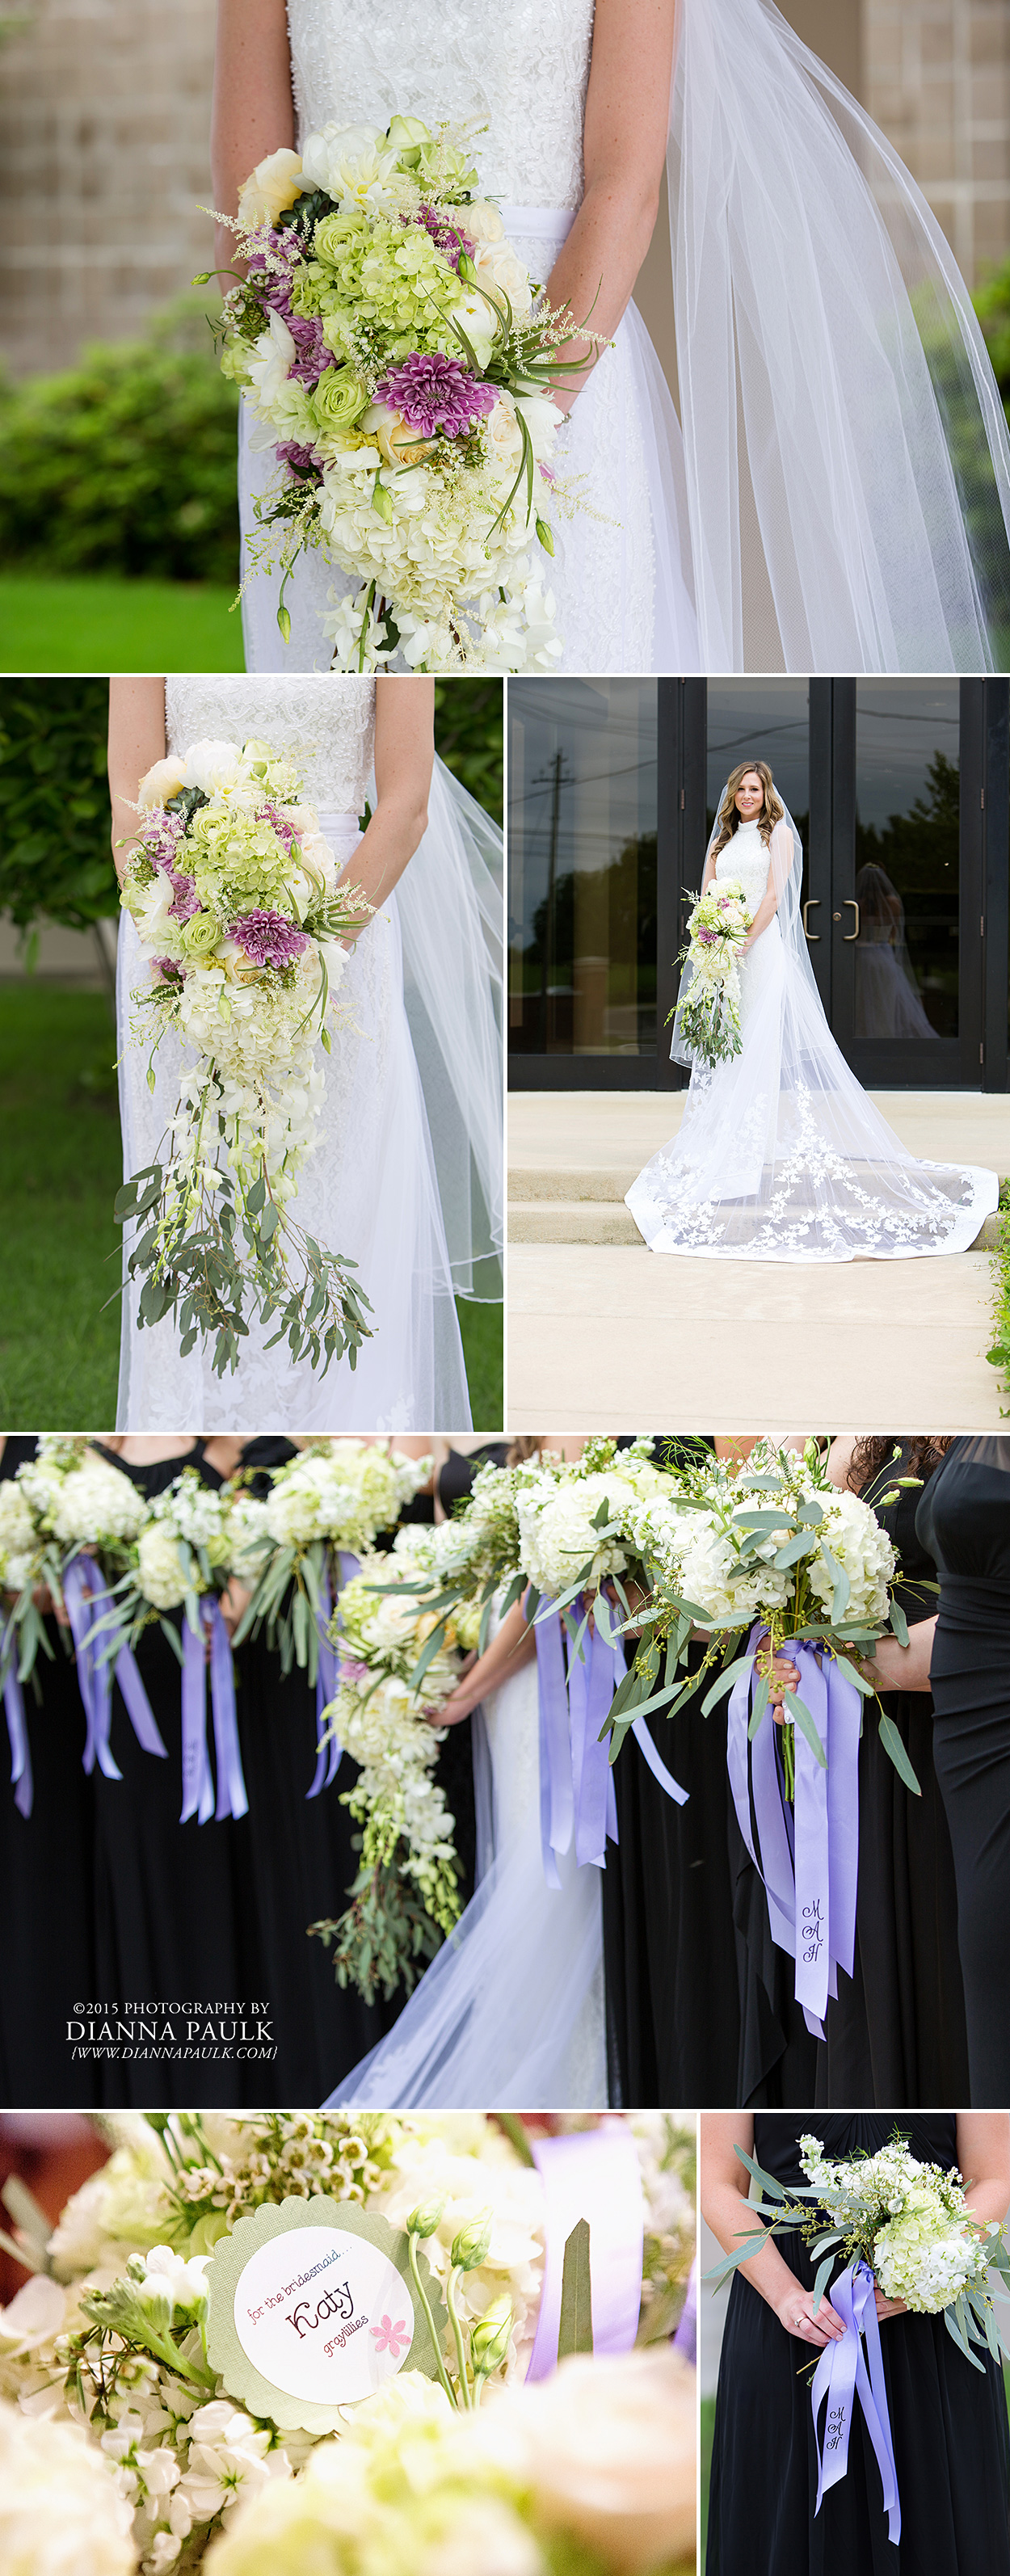 Beautiful Bridal And Bridesmaid Bouquets By Graylillies Photography Dianna